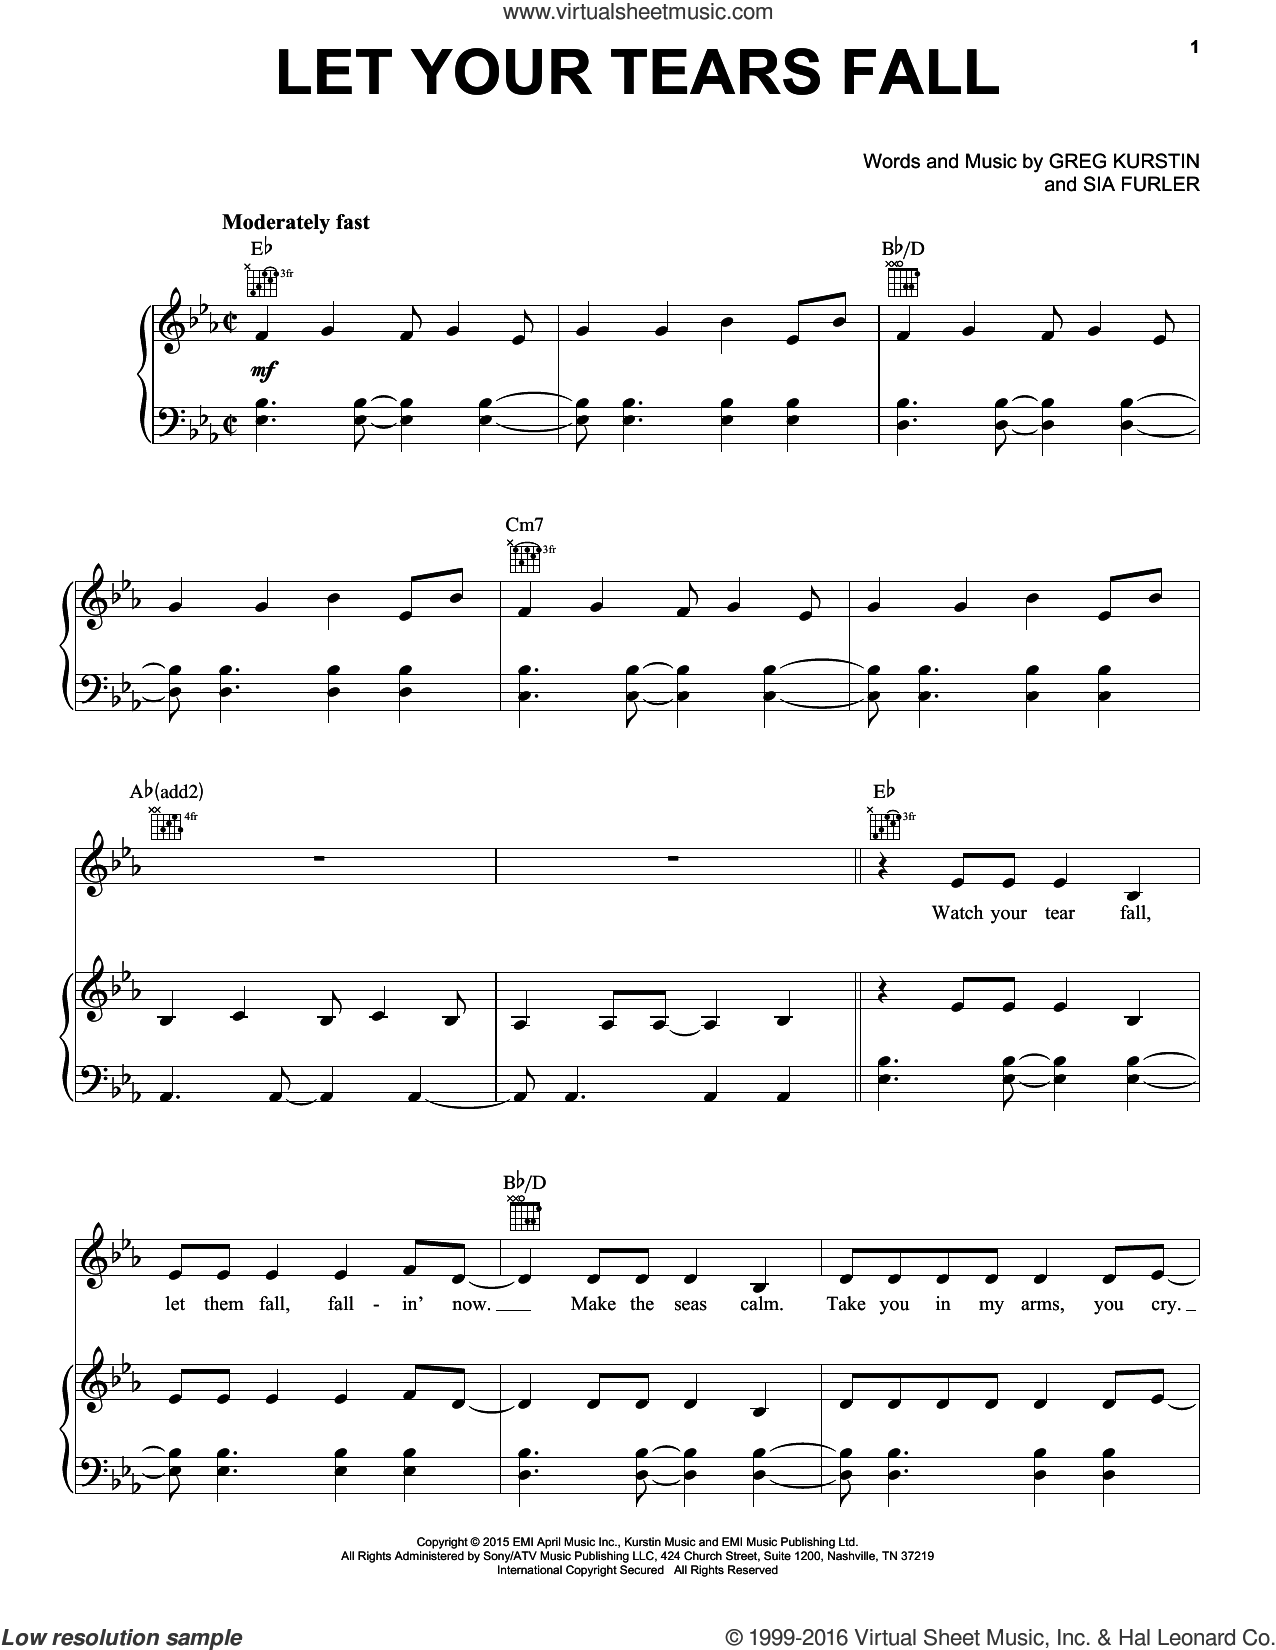 Let Your Tears Fall sheet music for voice, piano or guitar by Sia Furler, Kelly Clarkson and Greg Kurstin. Score Image Preview.